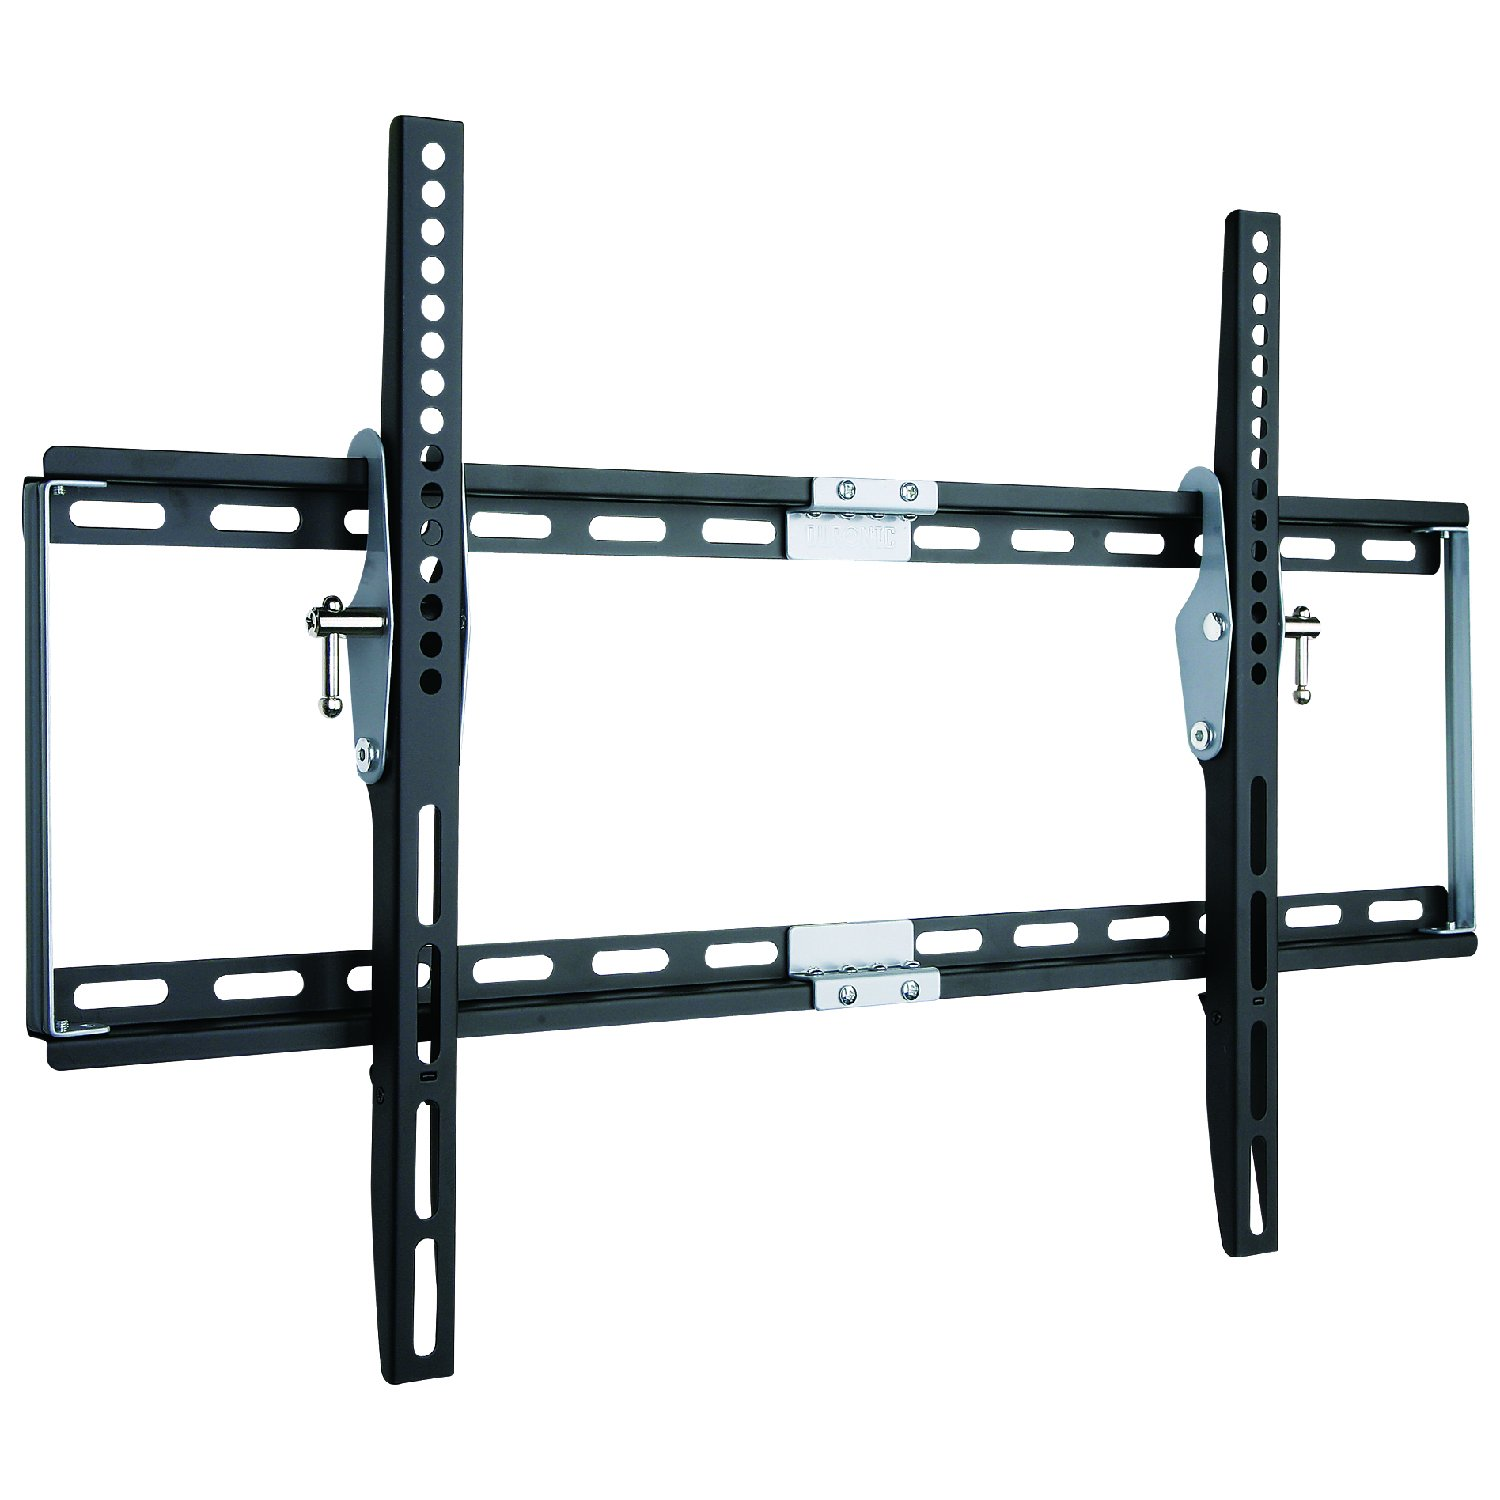 Duronic 33″ – 60″ TV Bracket TVB777 Heavy Duty Adjustable Black Wall Bracket